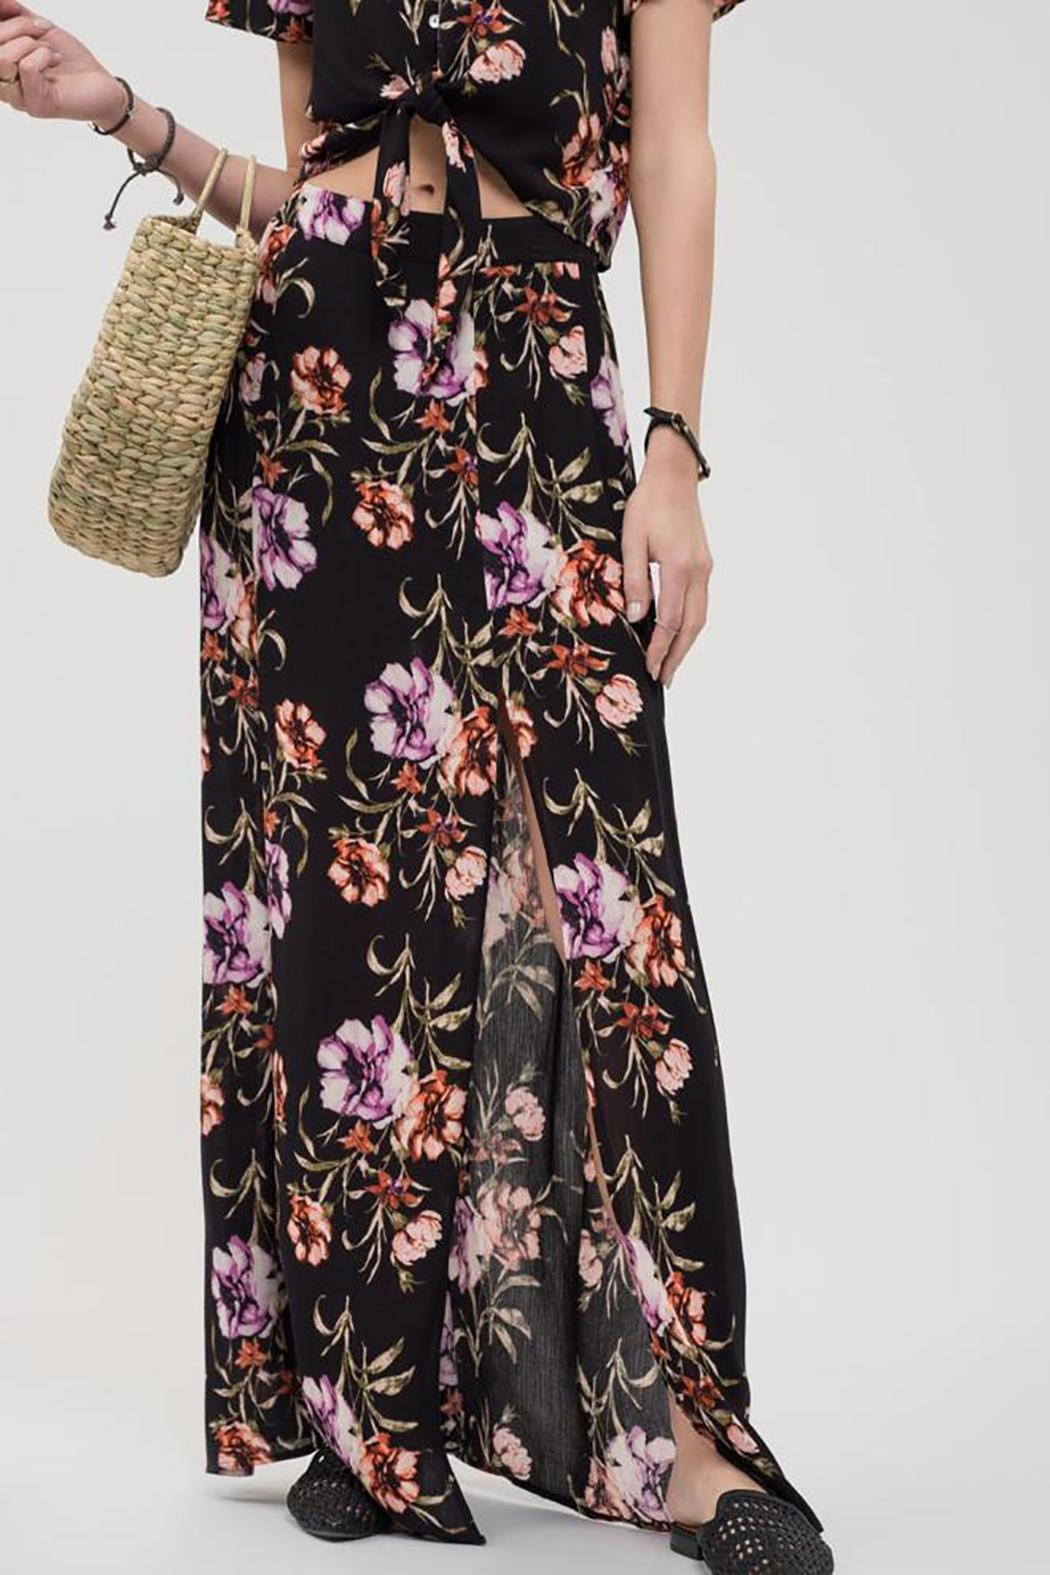 Blu Pepper Floral Maxi Skirt - Main Image